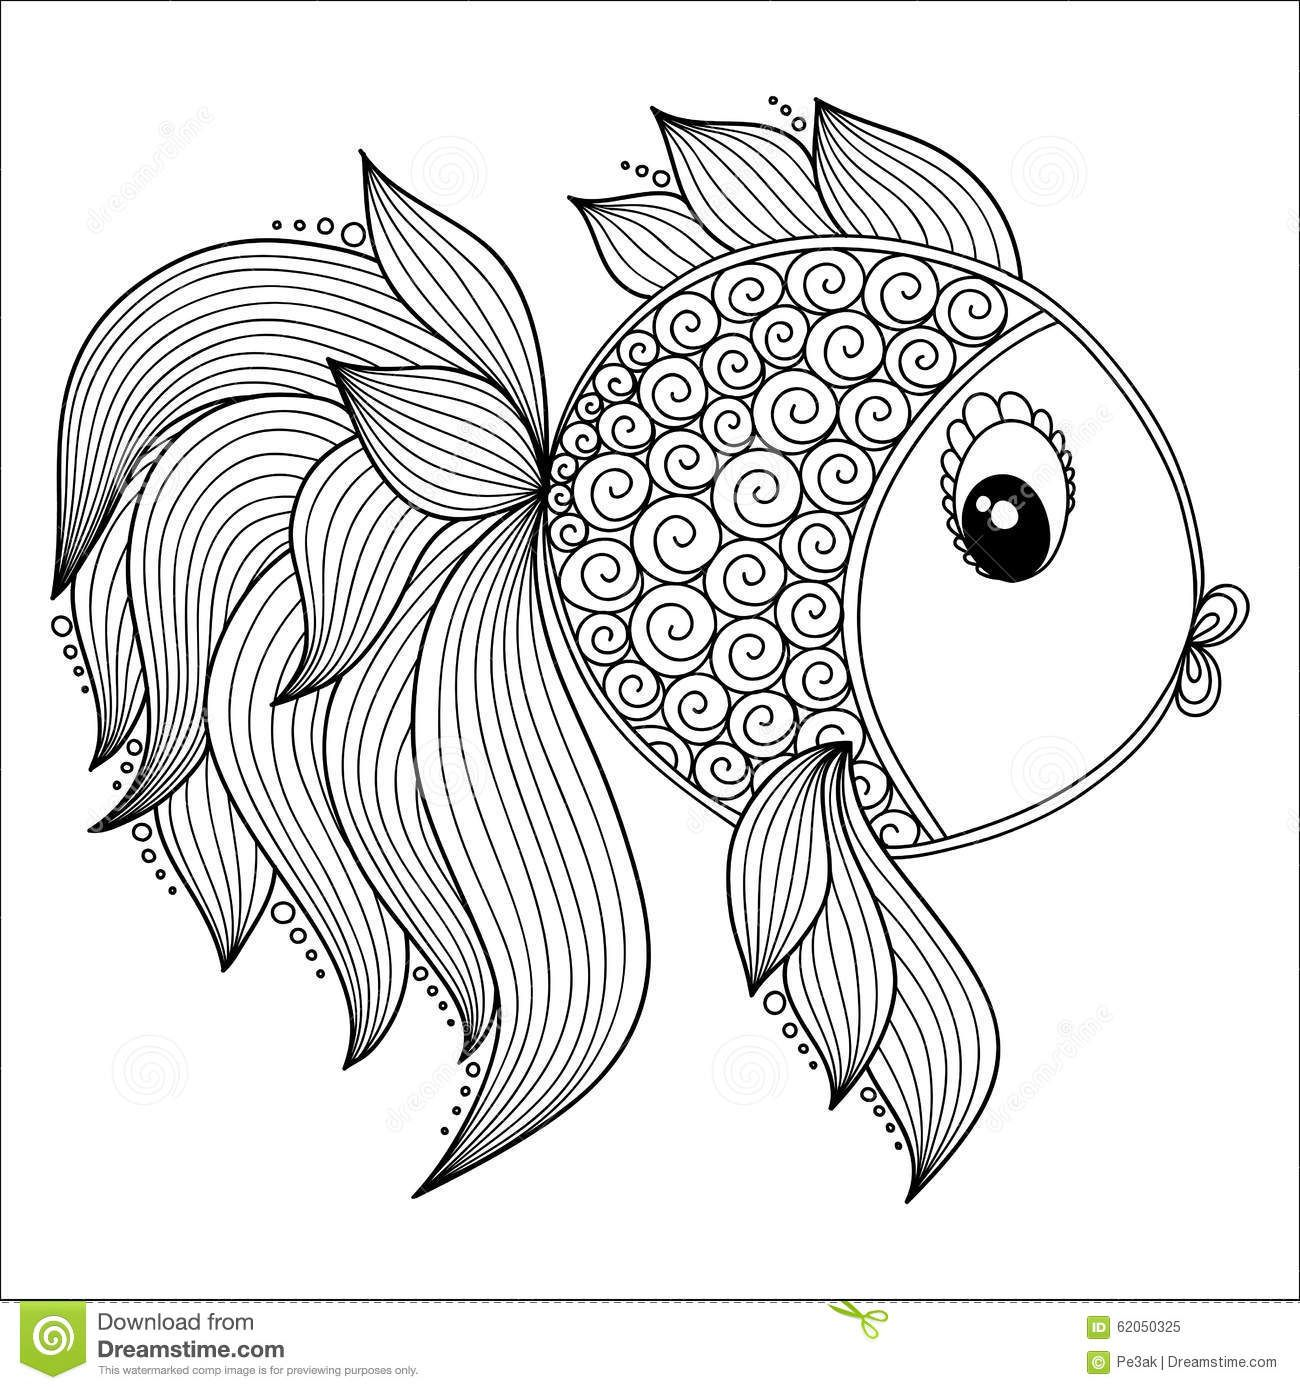 Coloring pages for adults cute - Coloring Book Stock Photos Images Pictures 16 473 Images